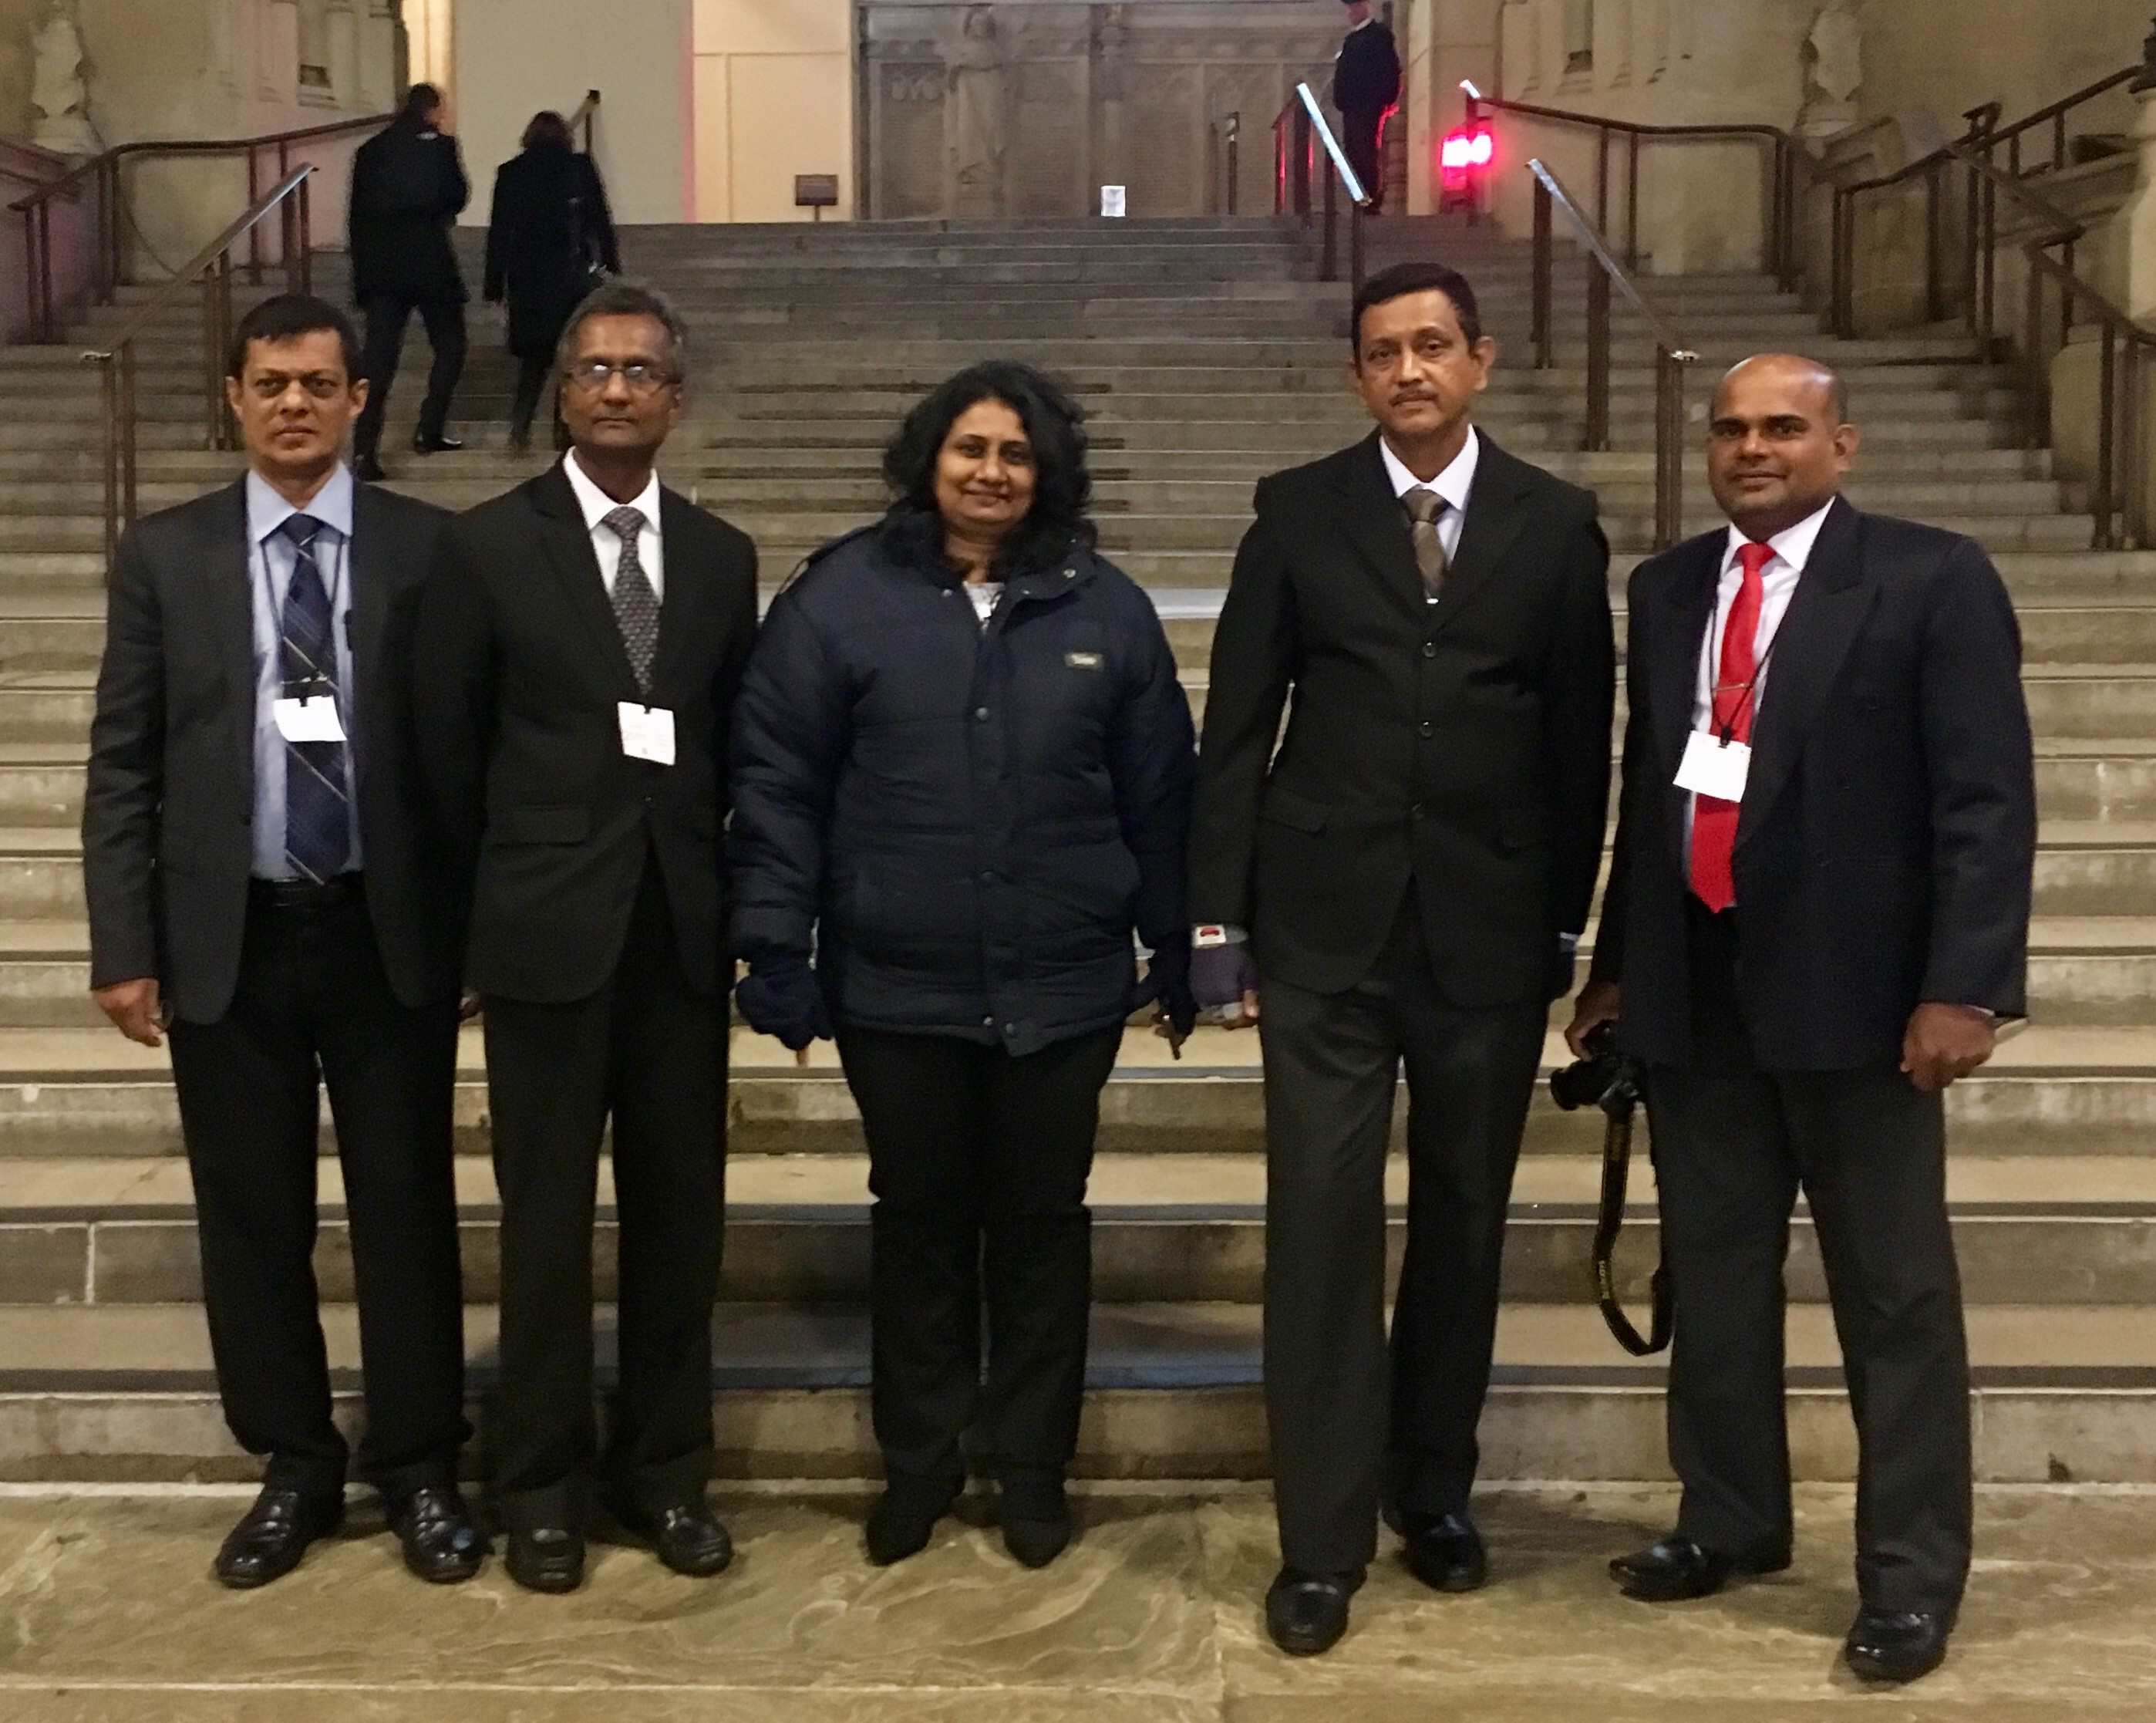 The delegation visits the Palace of Westminster